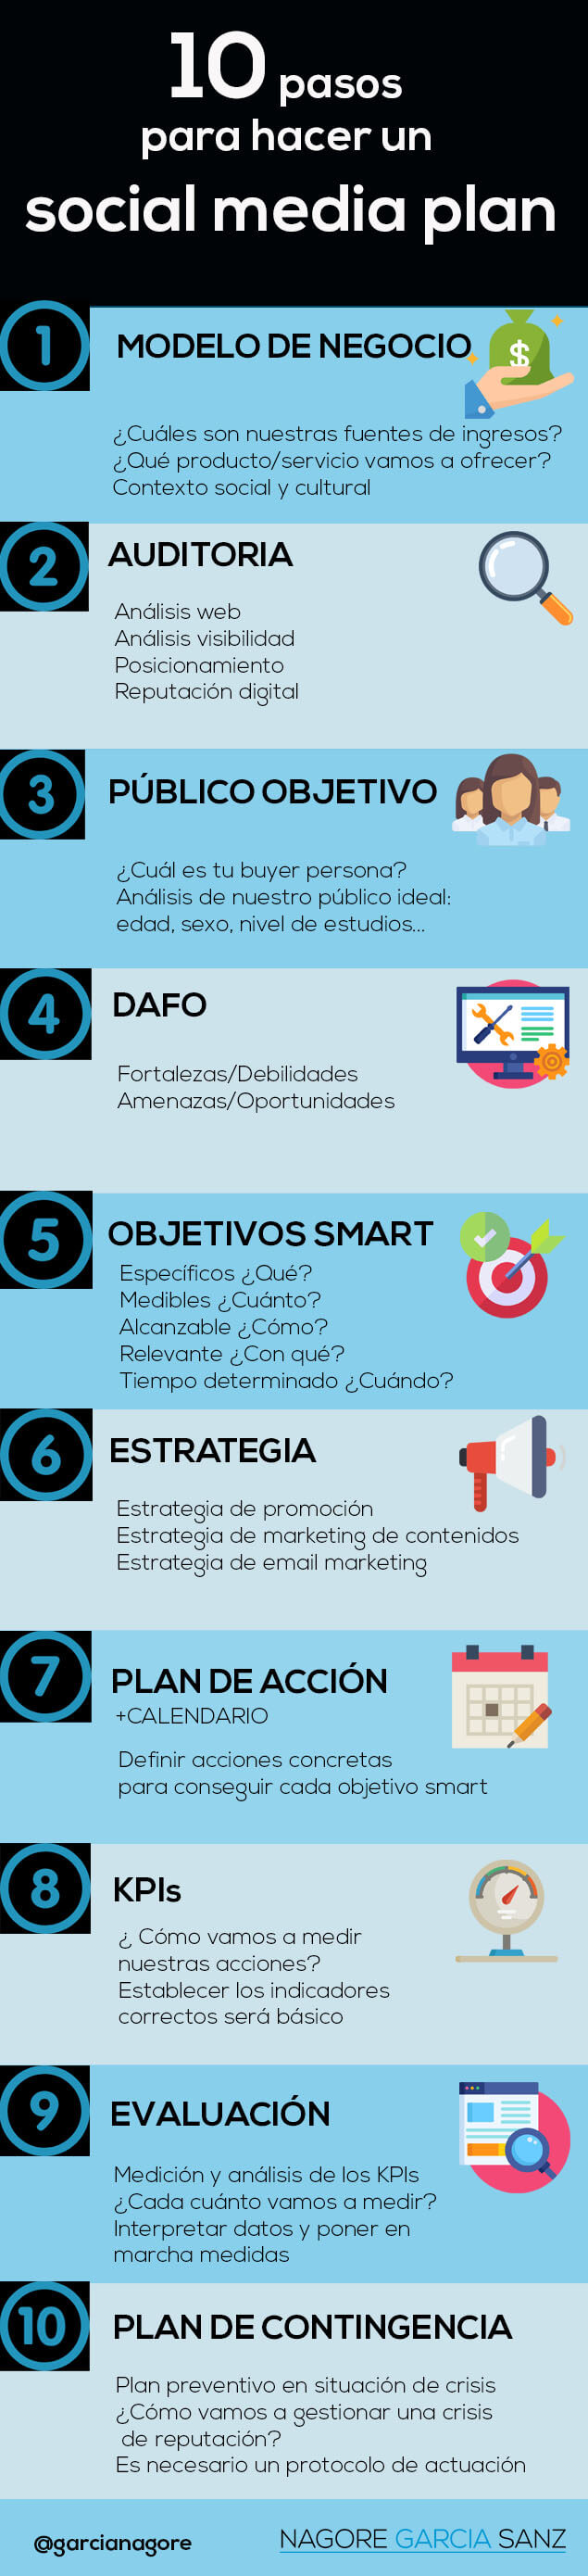 Inforgafía Como hacer un plan de social media marketing